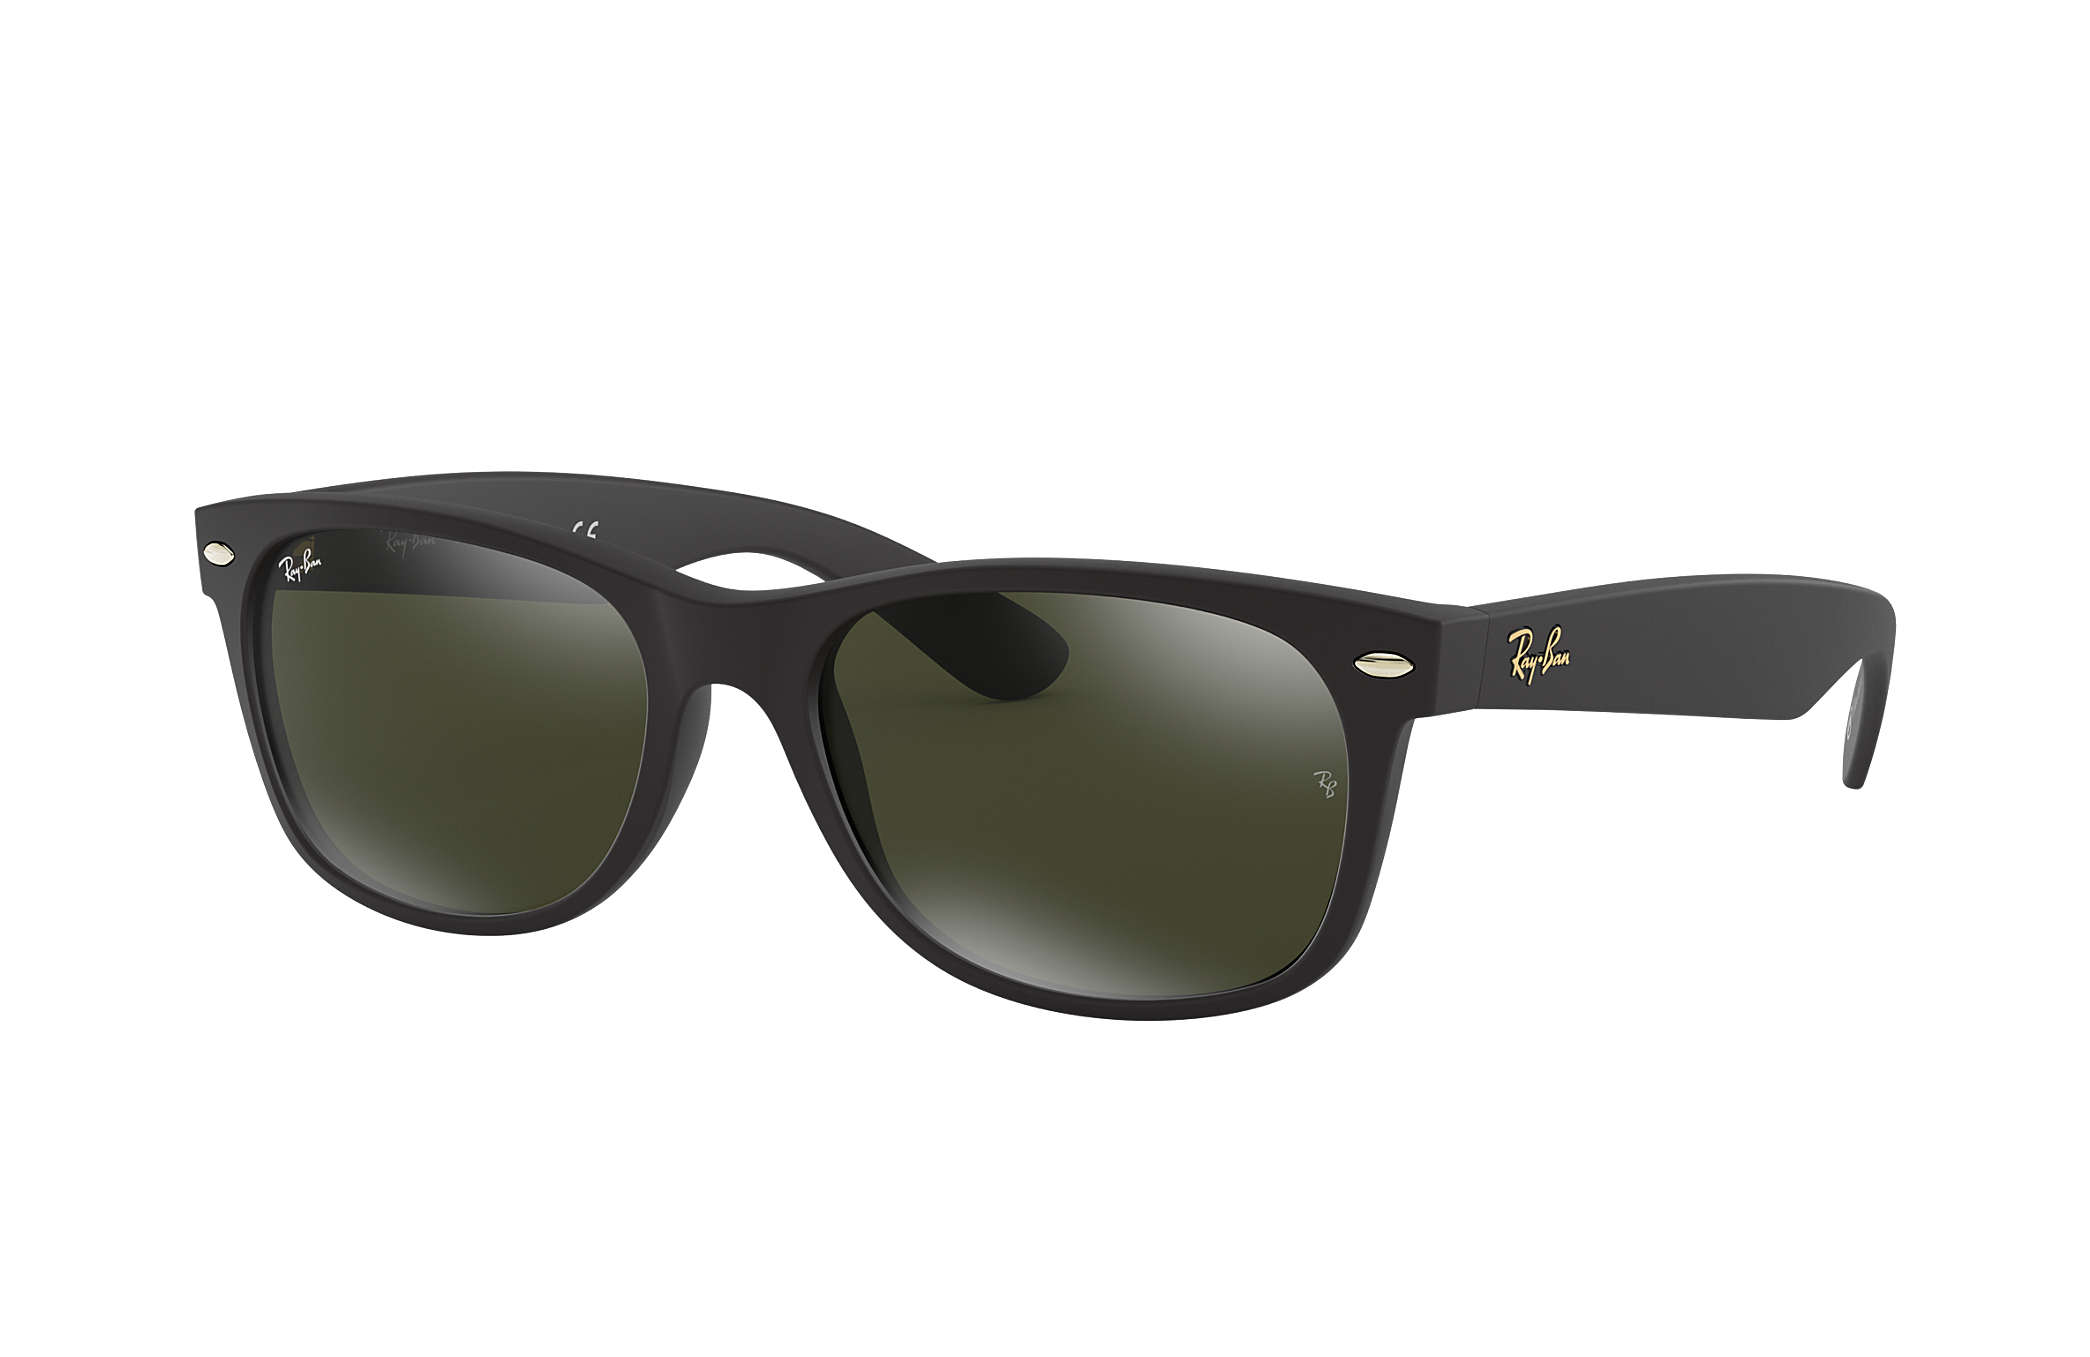 Ray-Ban New Wayfarer  collection RB2132 Black - Nylon - Silver ... 69d8eac1168cc